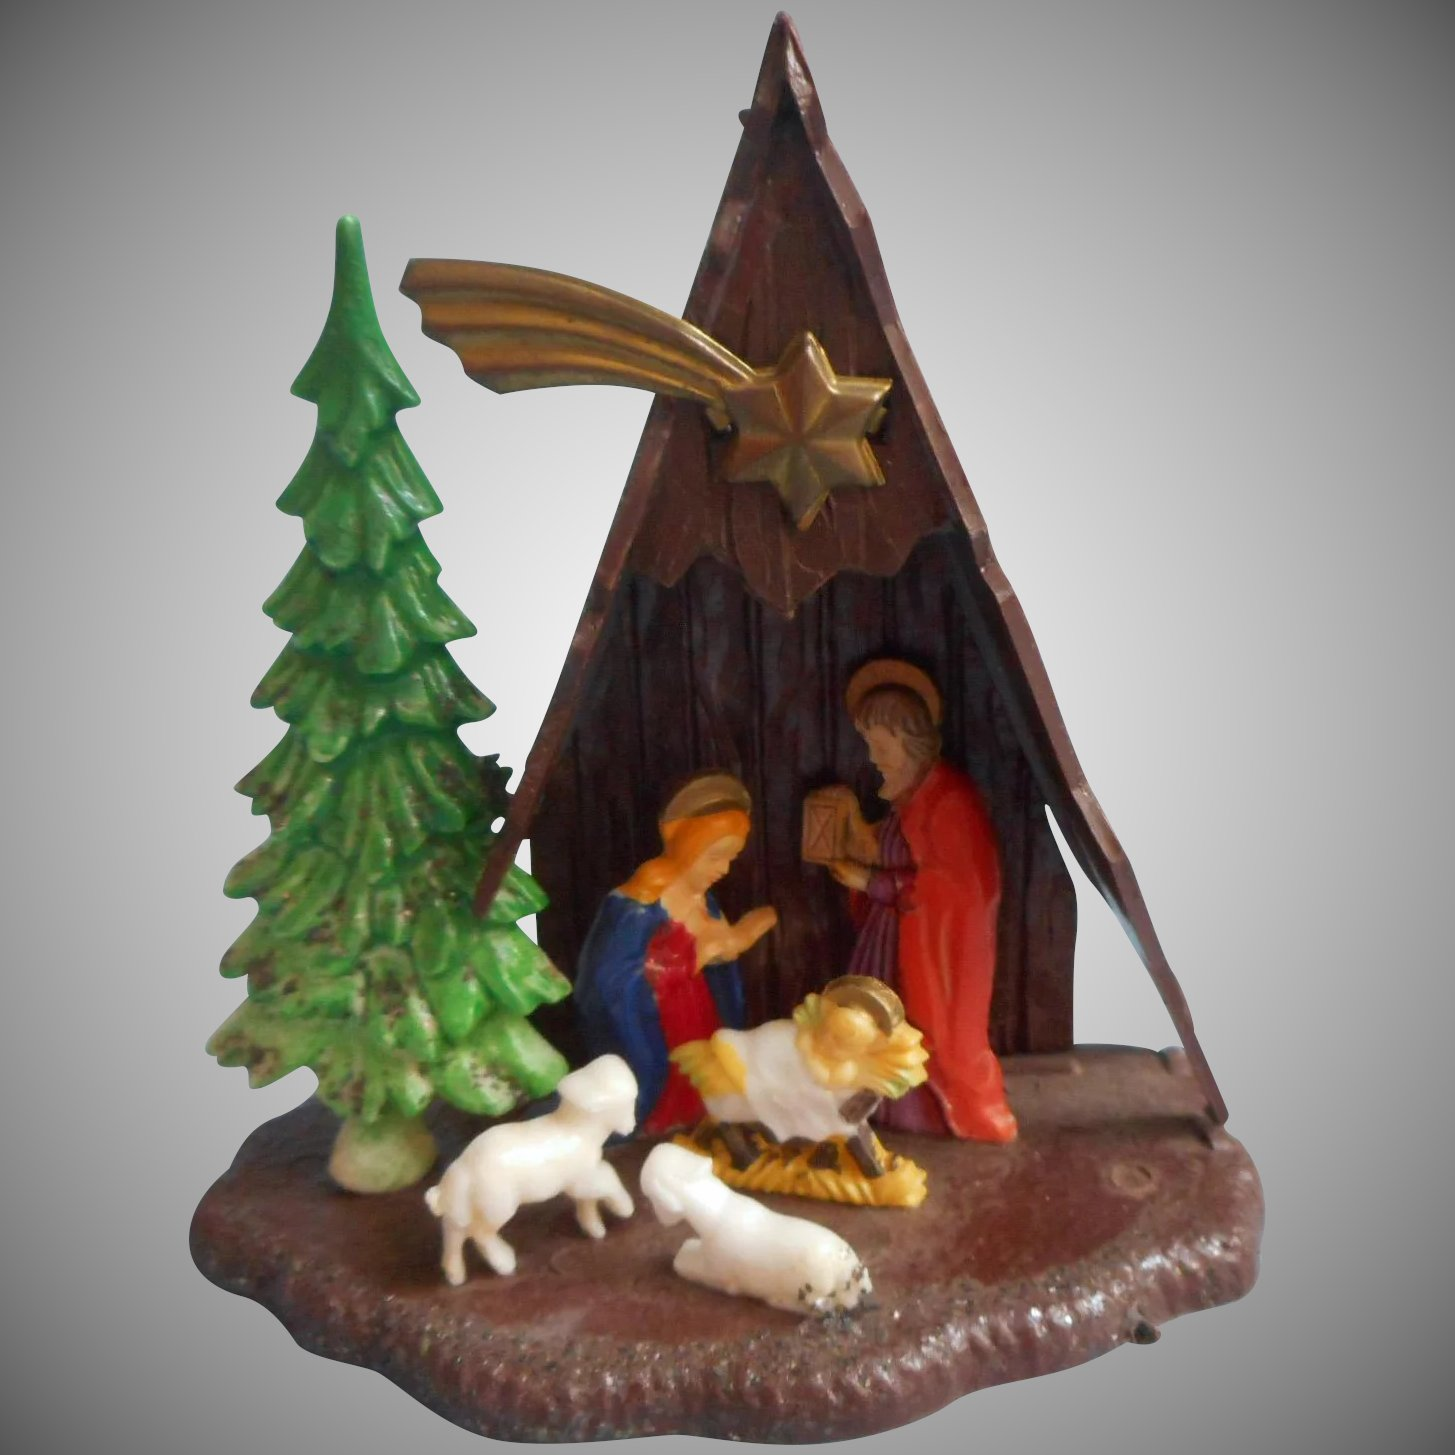 Vintage Religious Nativity Christmas Ornament: Vintage A Frame Nativity Christmas Ornament Plastic Hong